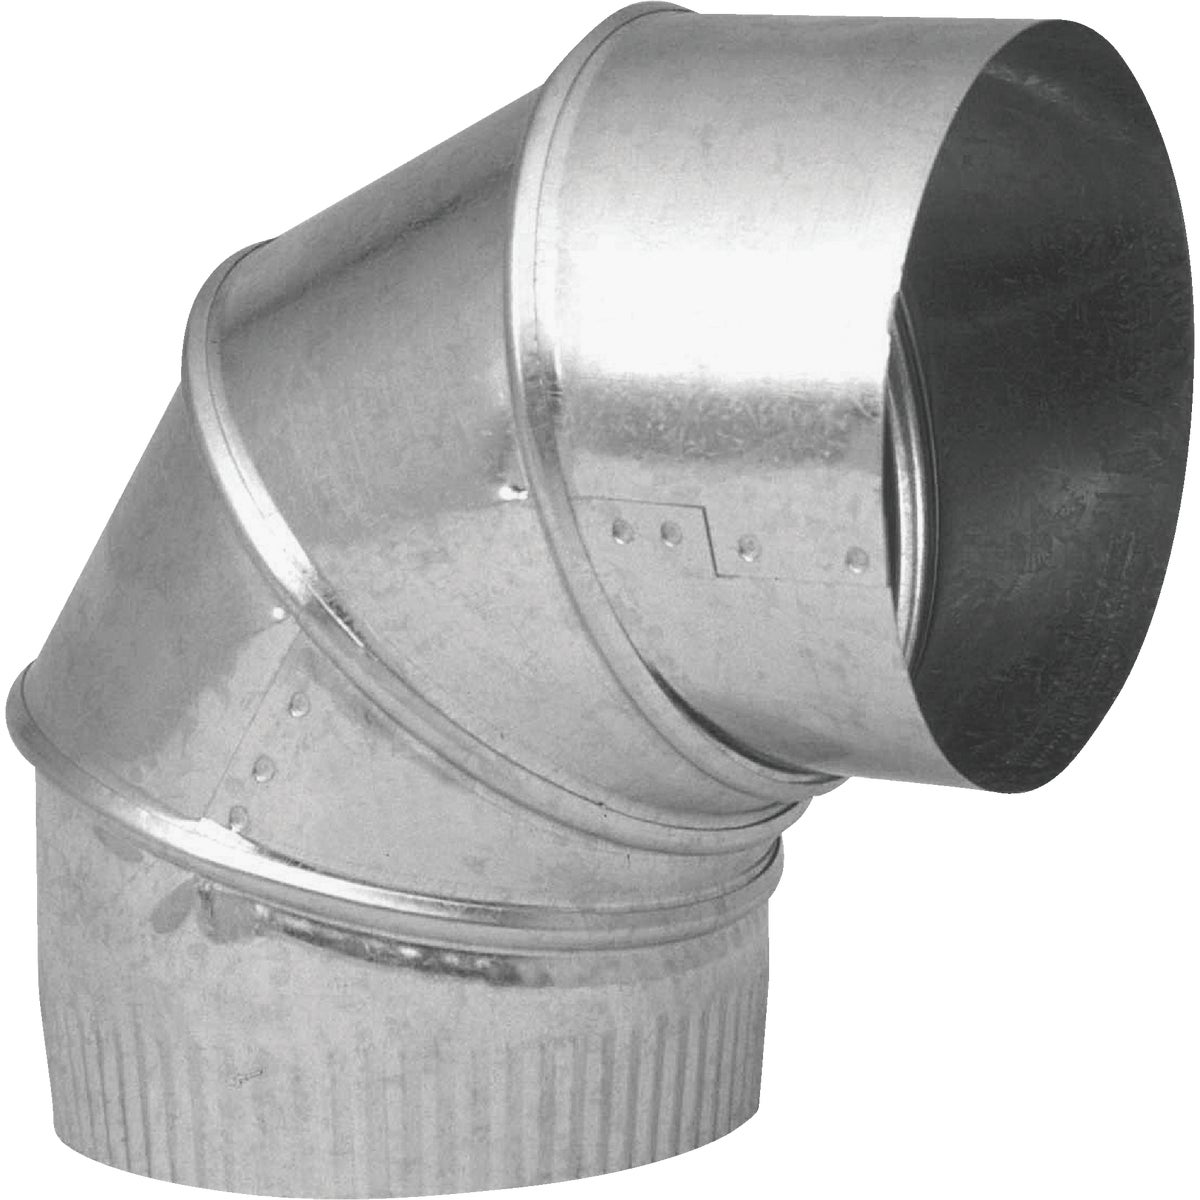 "6"" 26GA GALV ADJ ELBOW - GV0294-C by Imperial Mfg Group"